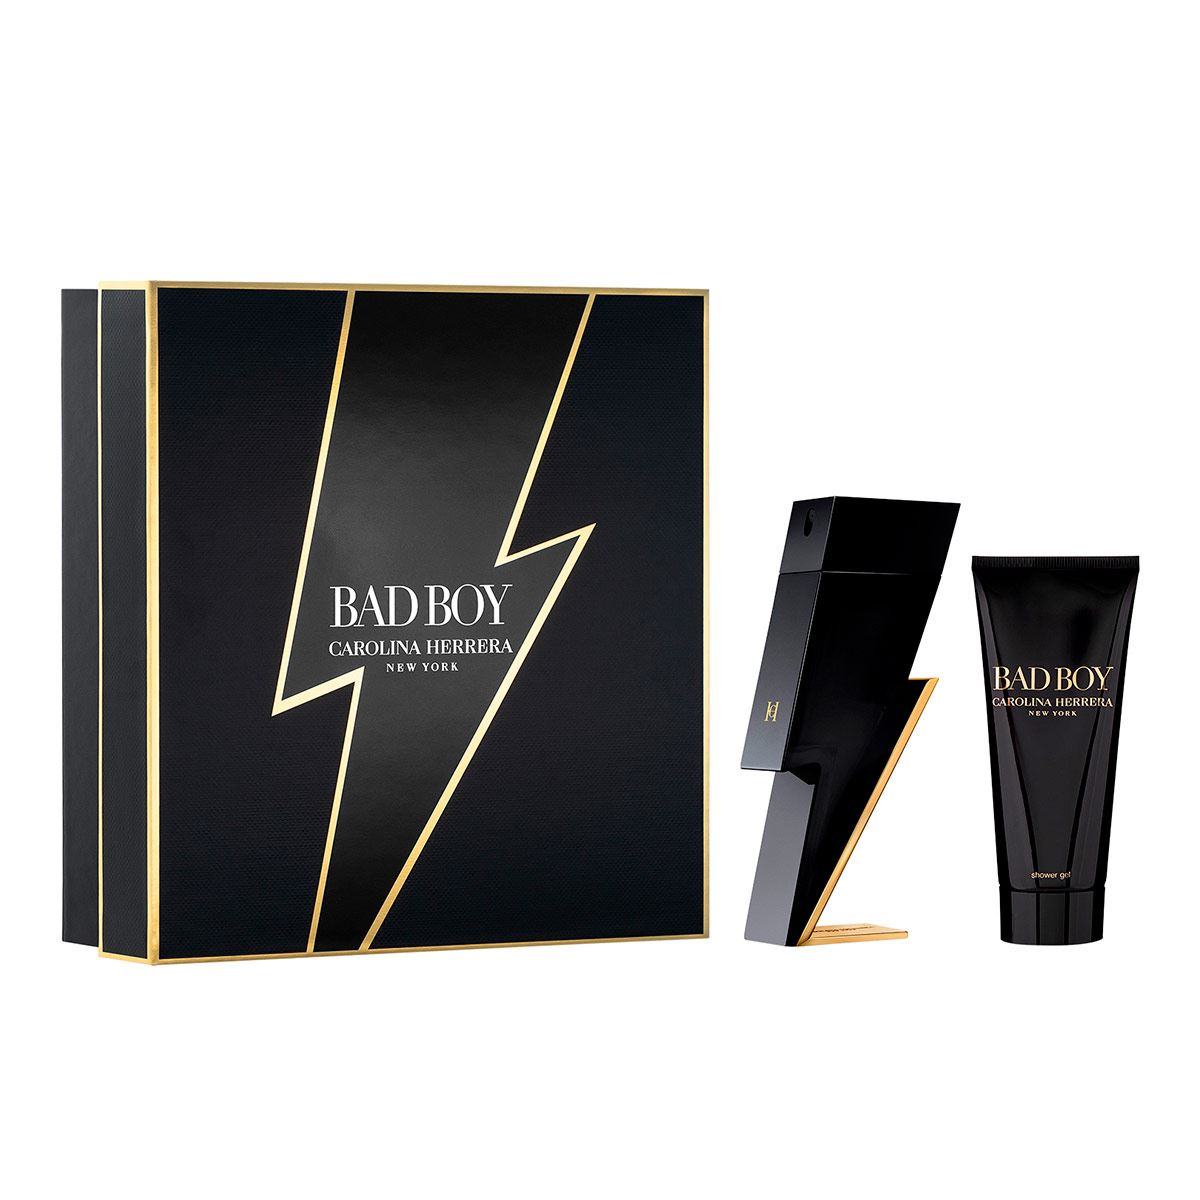 Set Para Caballero Carolina Herrera, Ch Bad Boy EDT 100ml + Shower Gel 50ml